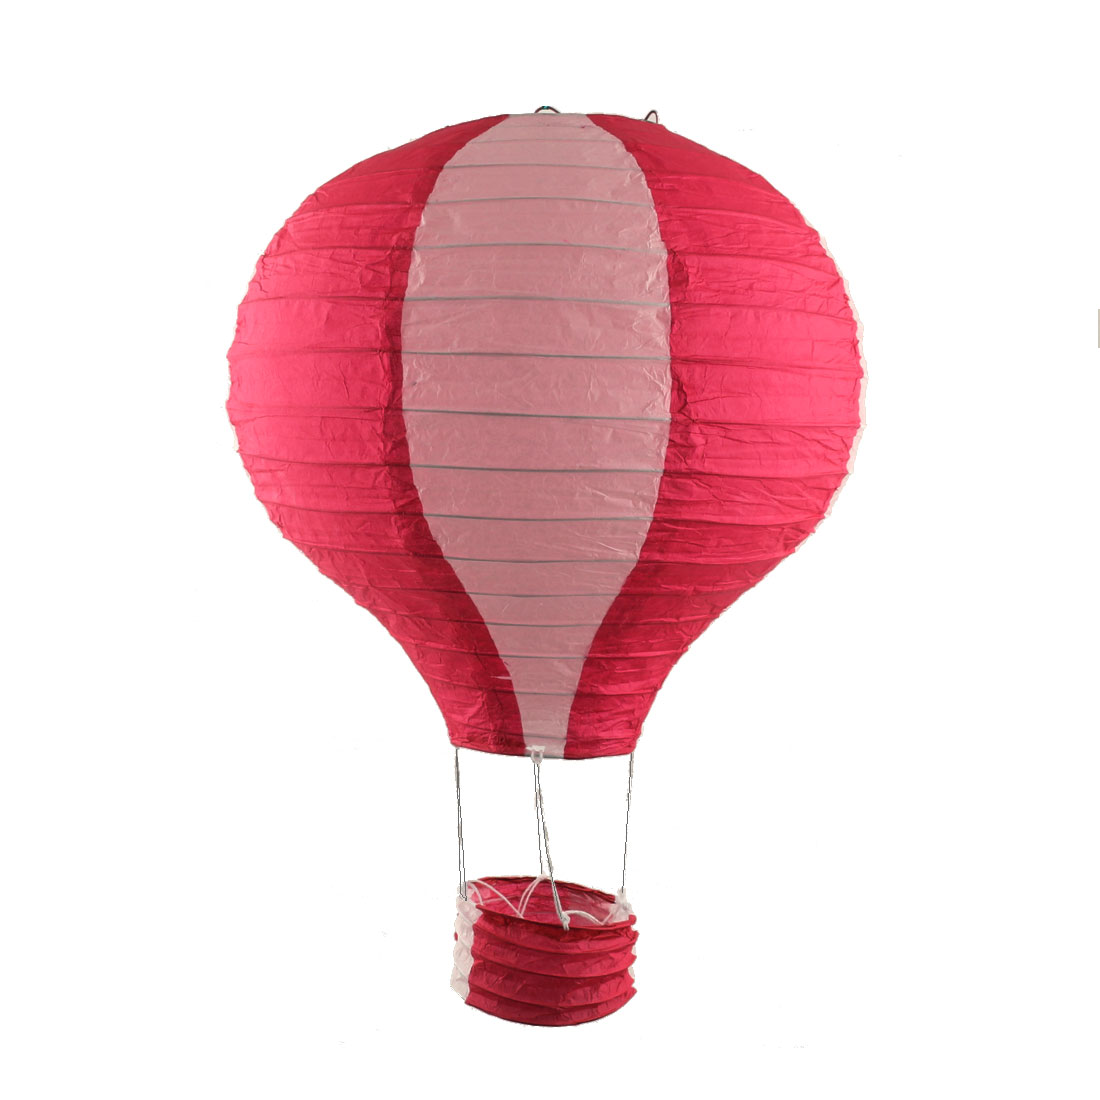 Engagement Festival Party Paper DIY Handmade Lightless Hanging Hot Air Balloon Lantern Red White